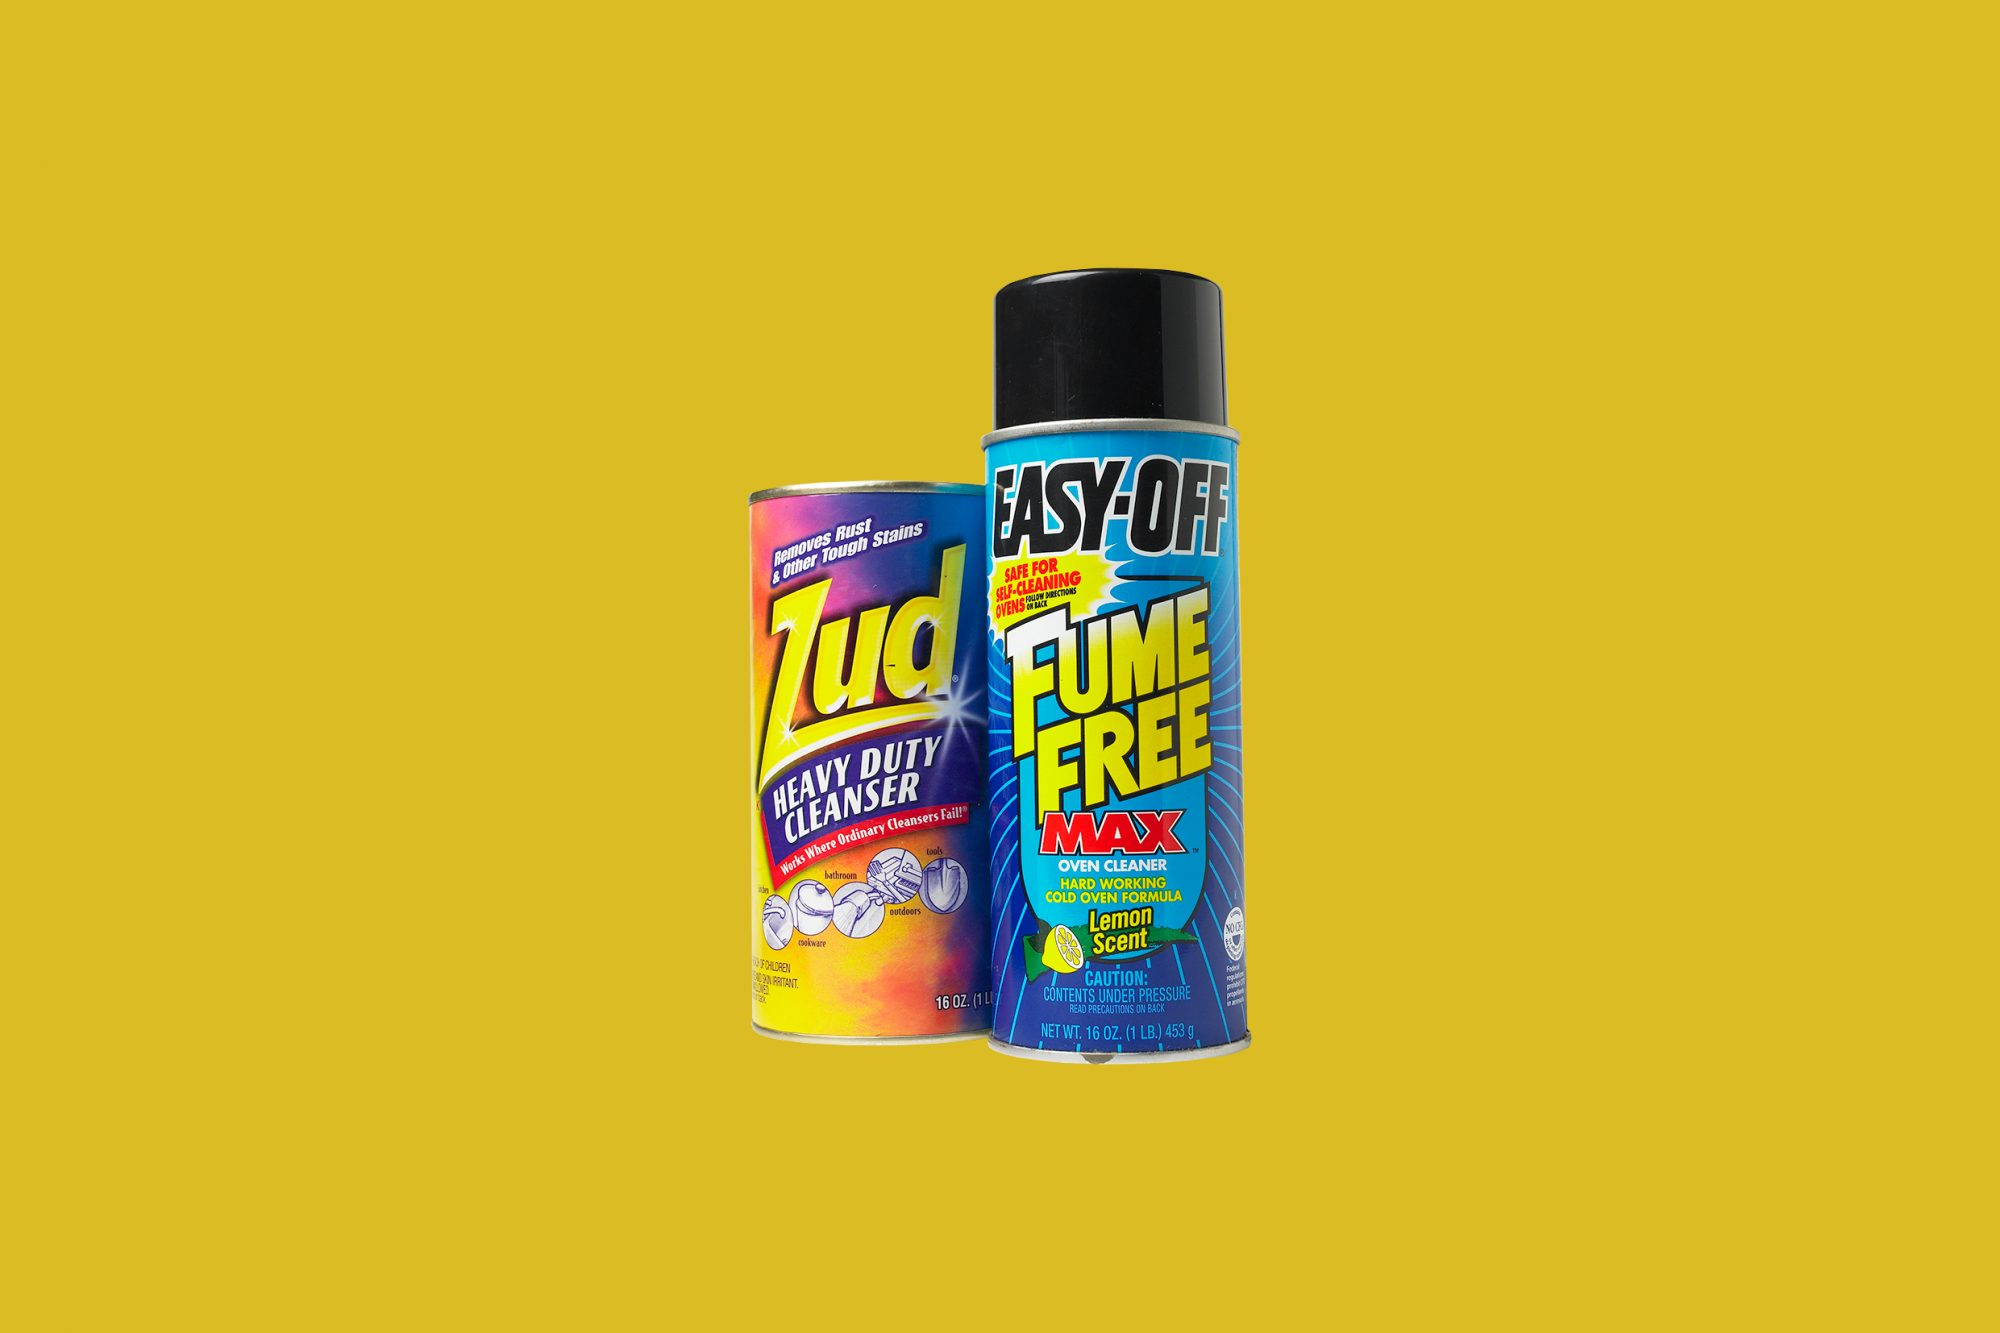 Easy-Off Oven Cleaner and Zud Cream Cleaner